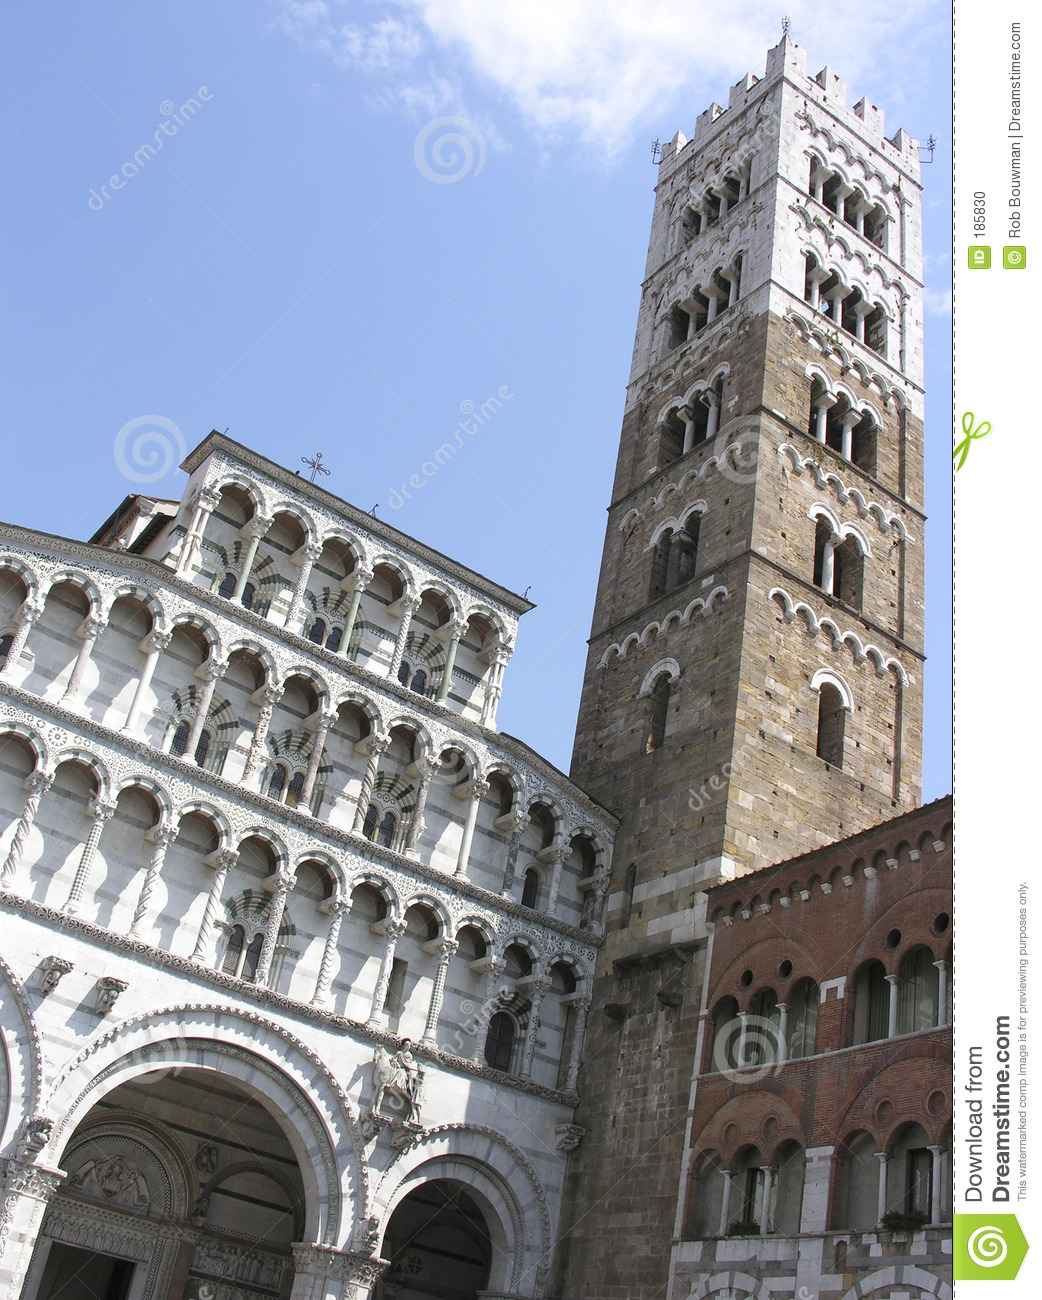 Chiesa a Lucca